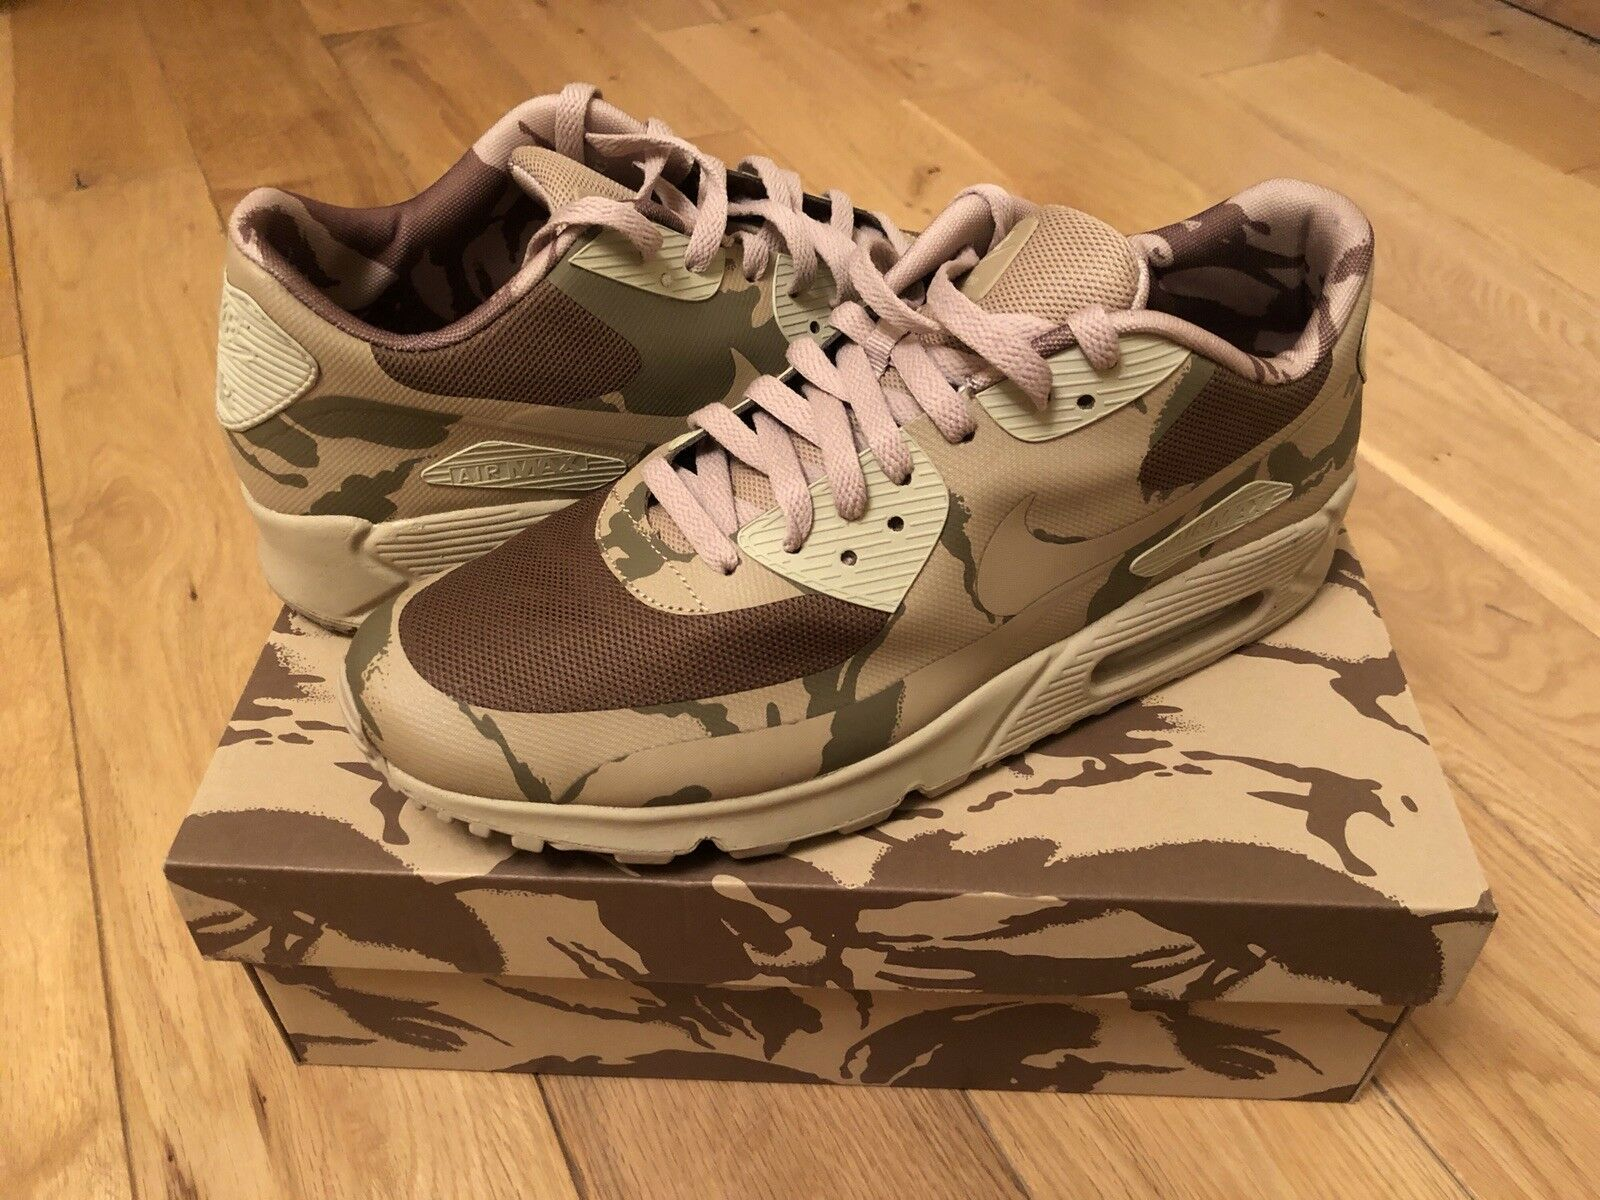 2018 Nike Air Max 90Camo SP10.5 Country Camouflage Tier Zero 1